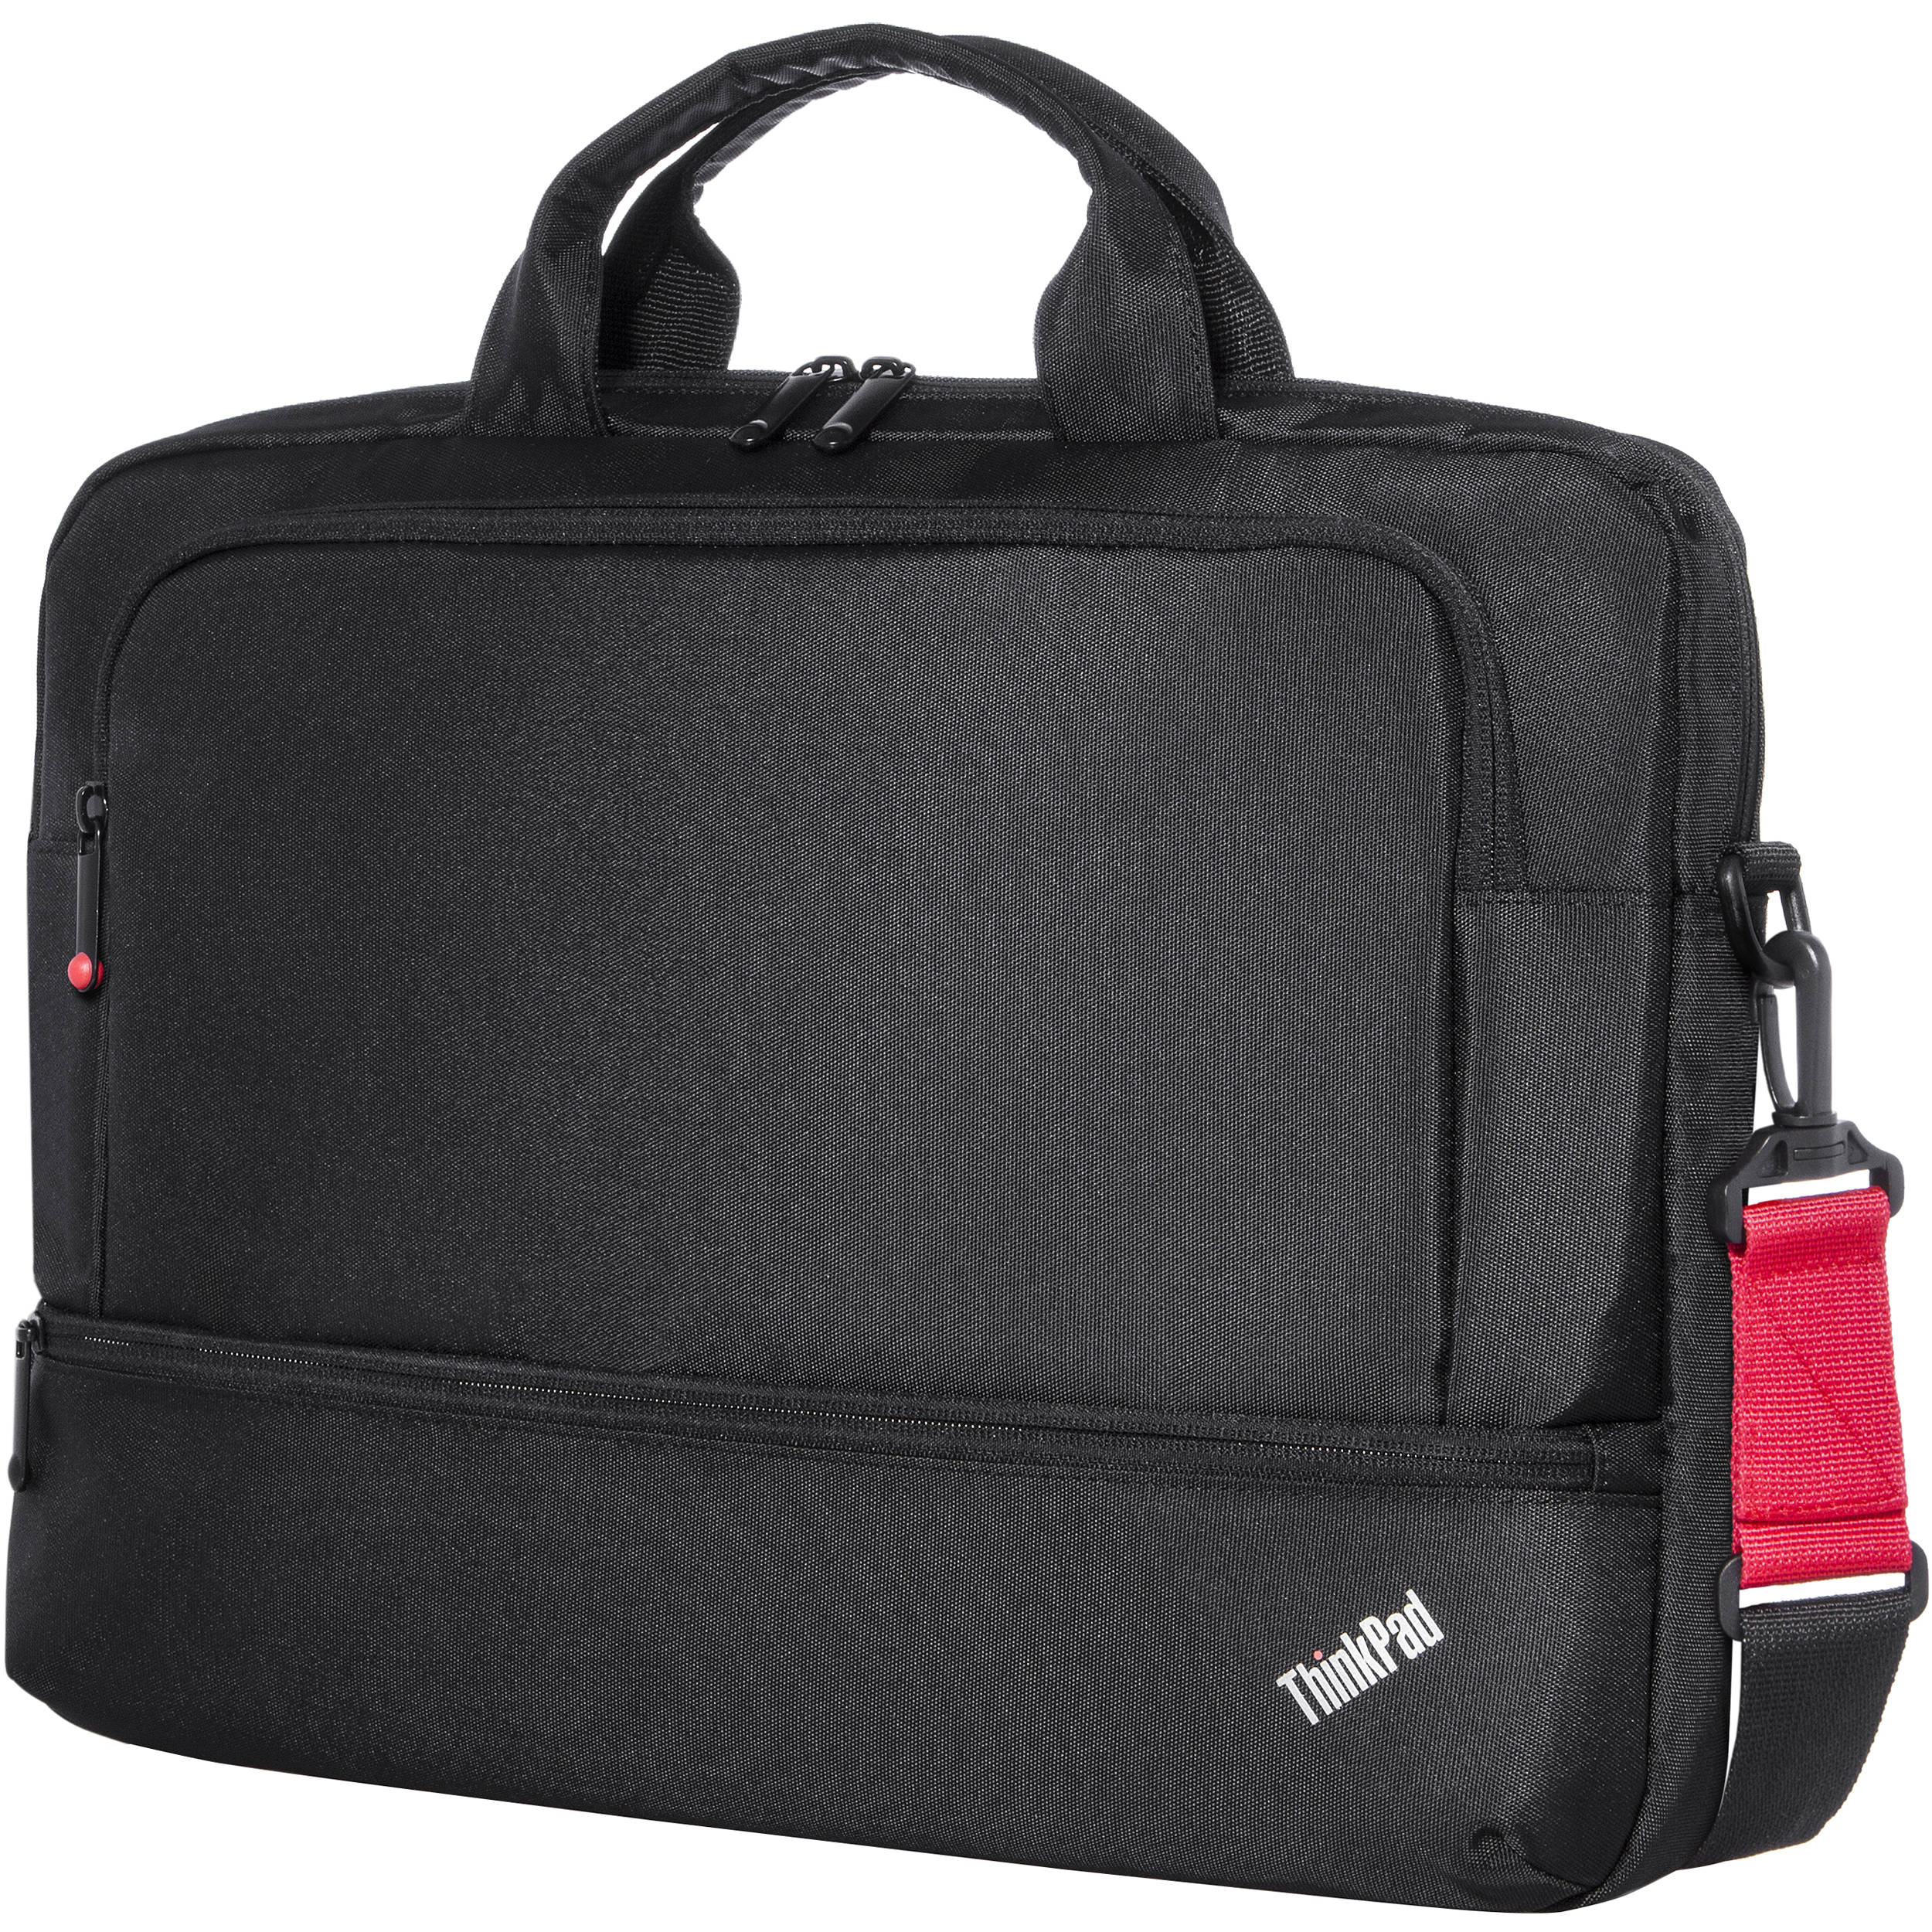 de45b66053f8 Lenovo ThinkPad Essential Topload Case for up to 15.6